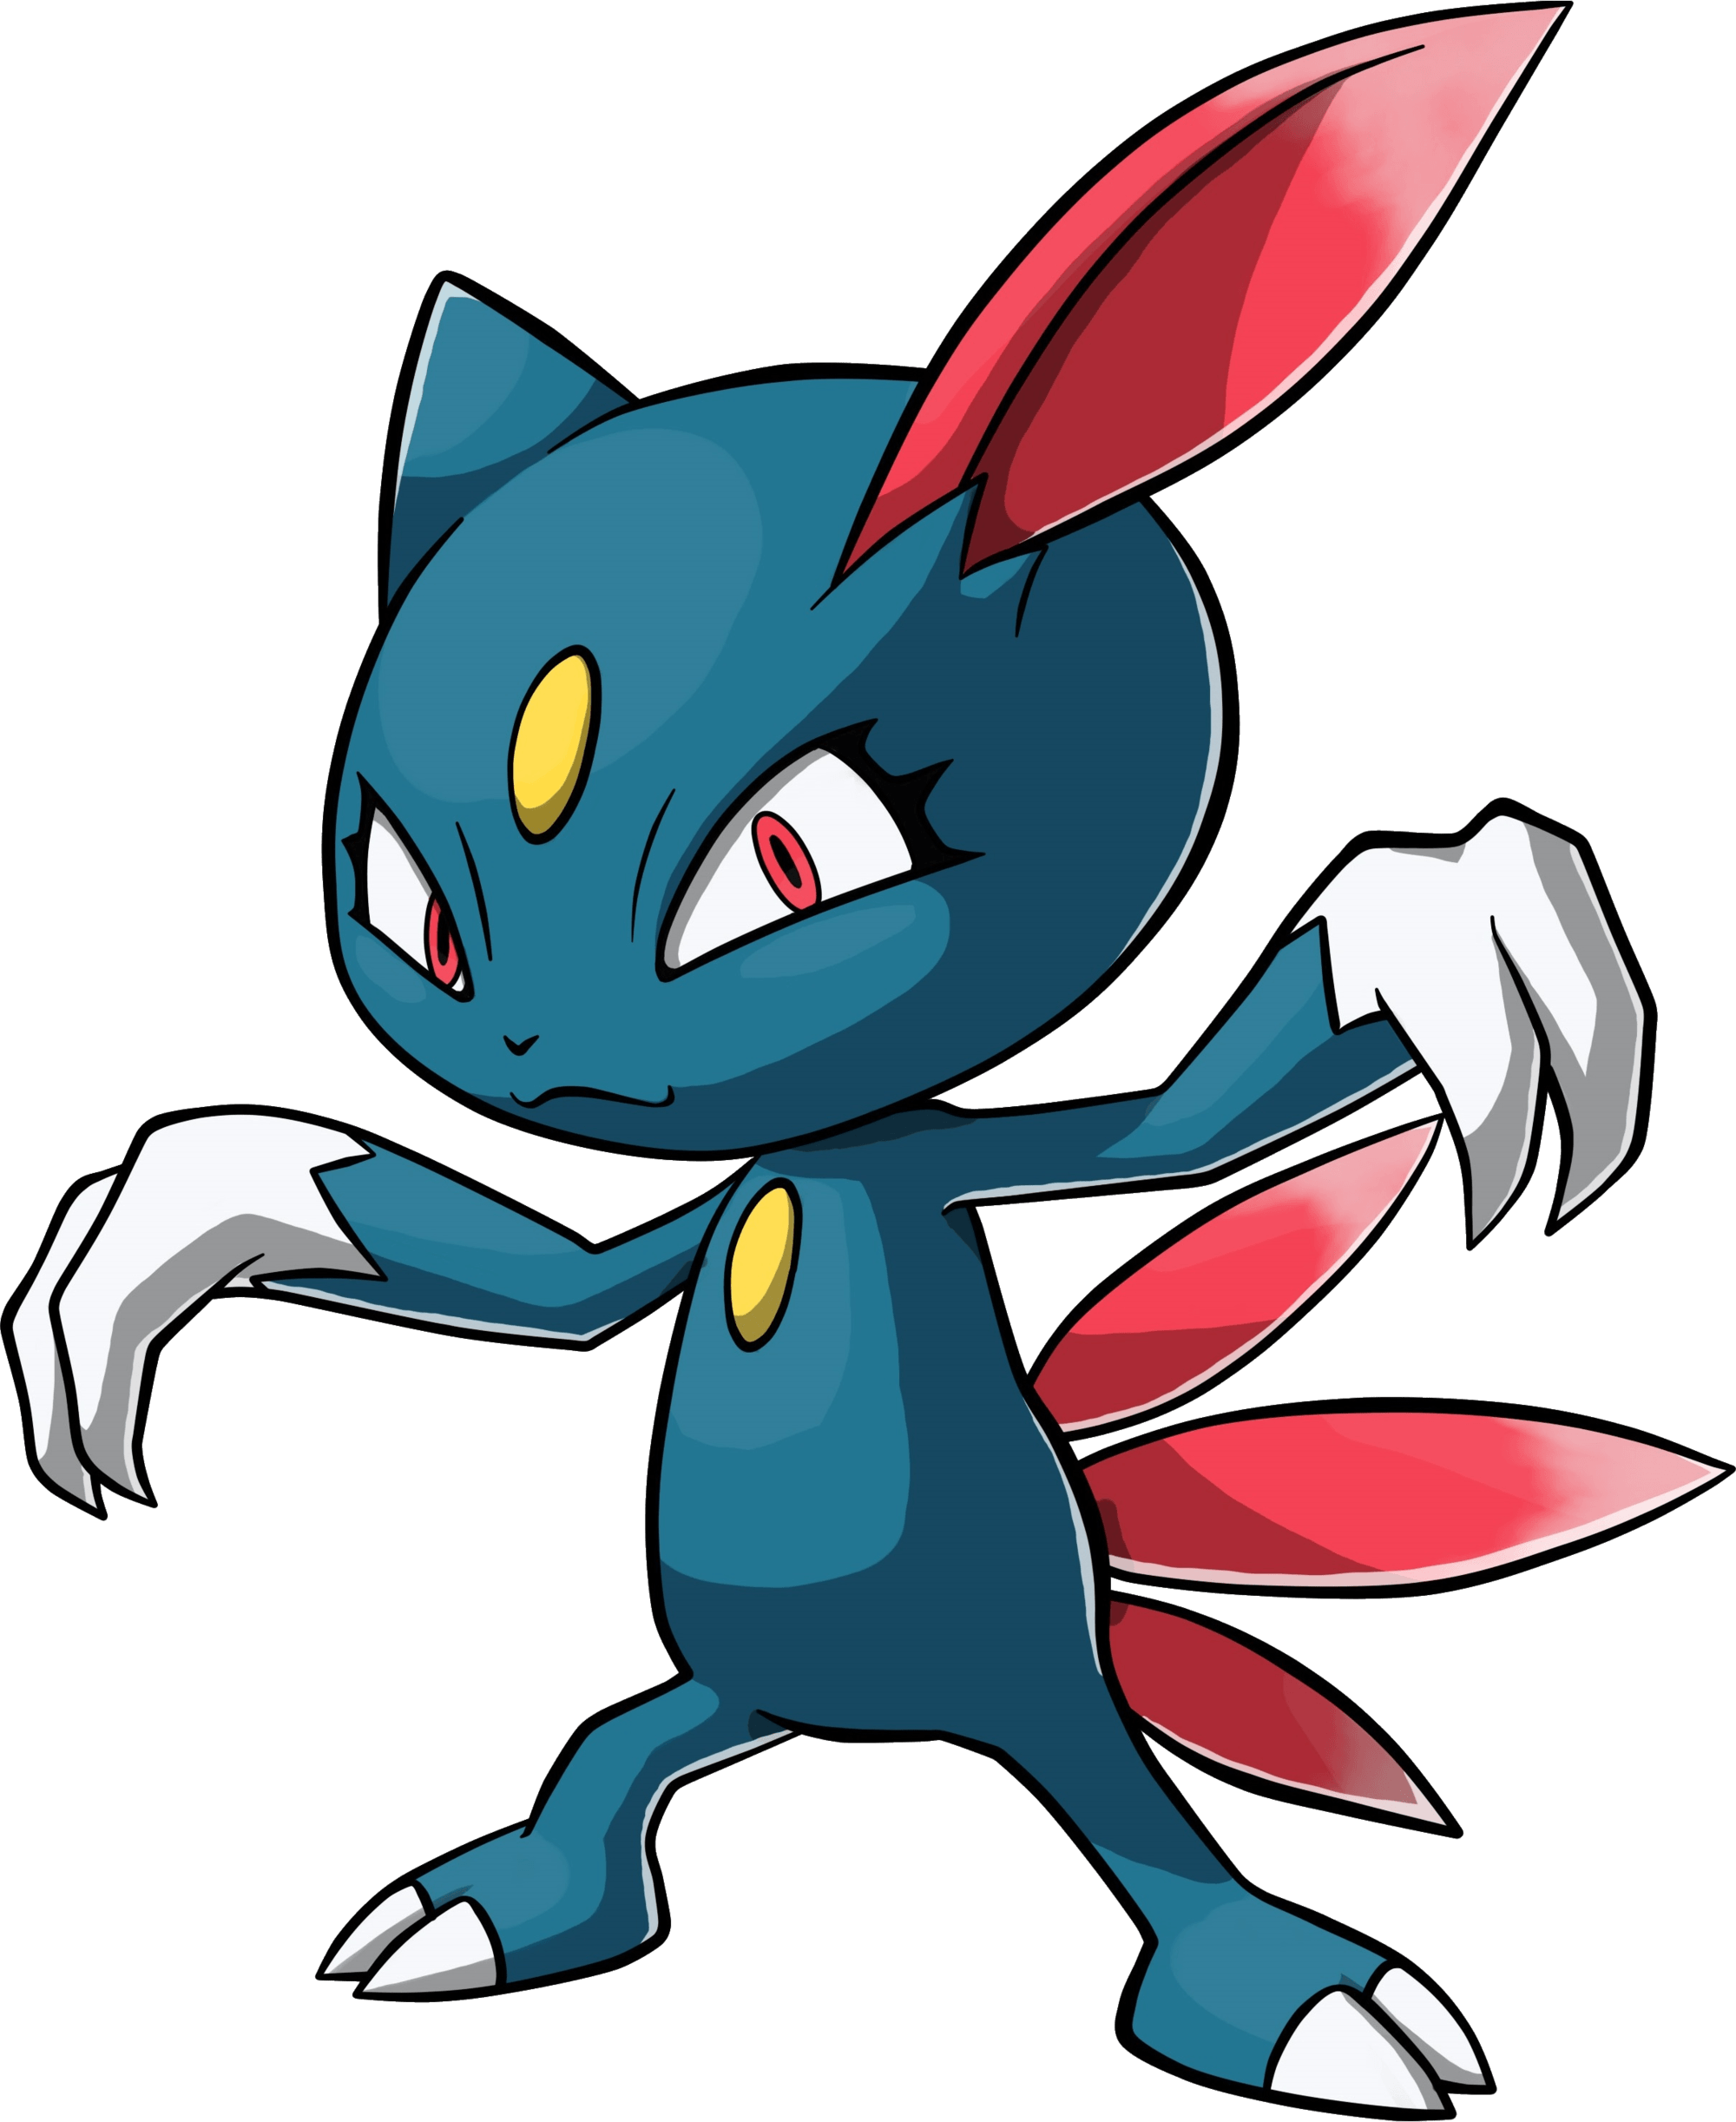 Sneasel | Pokémon Wiki | FANDOM powered by Wikia